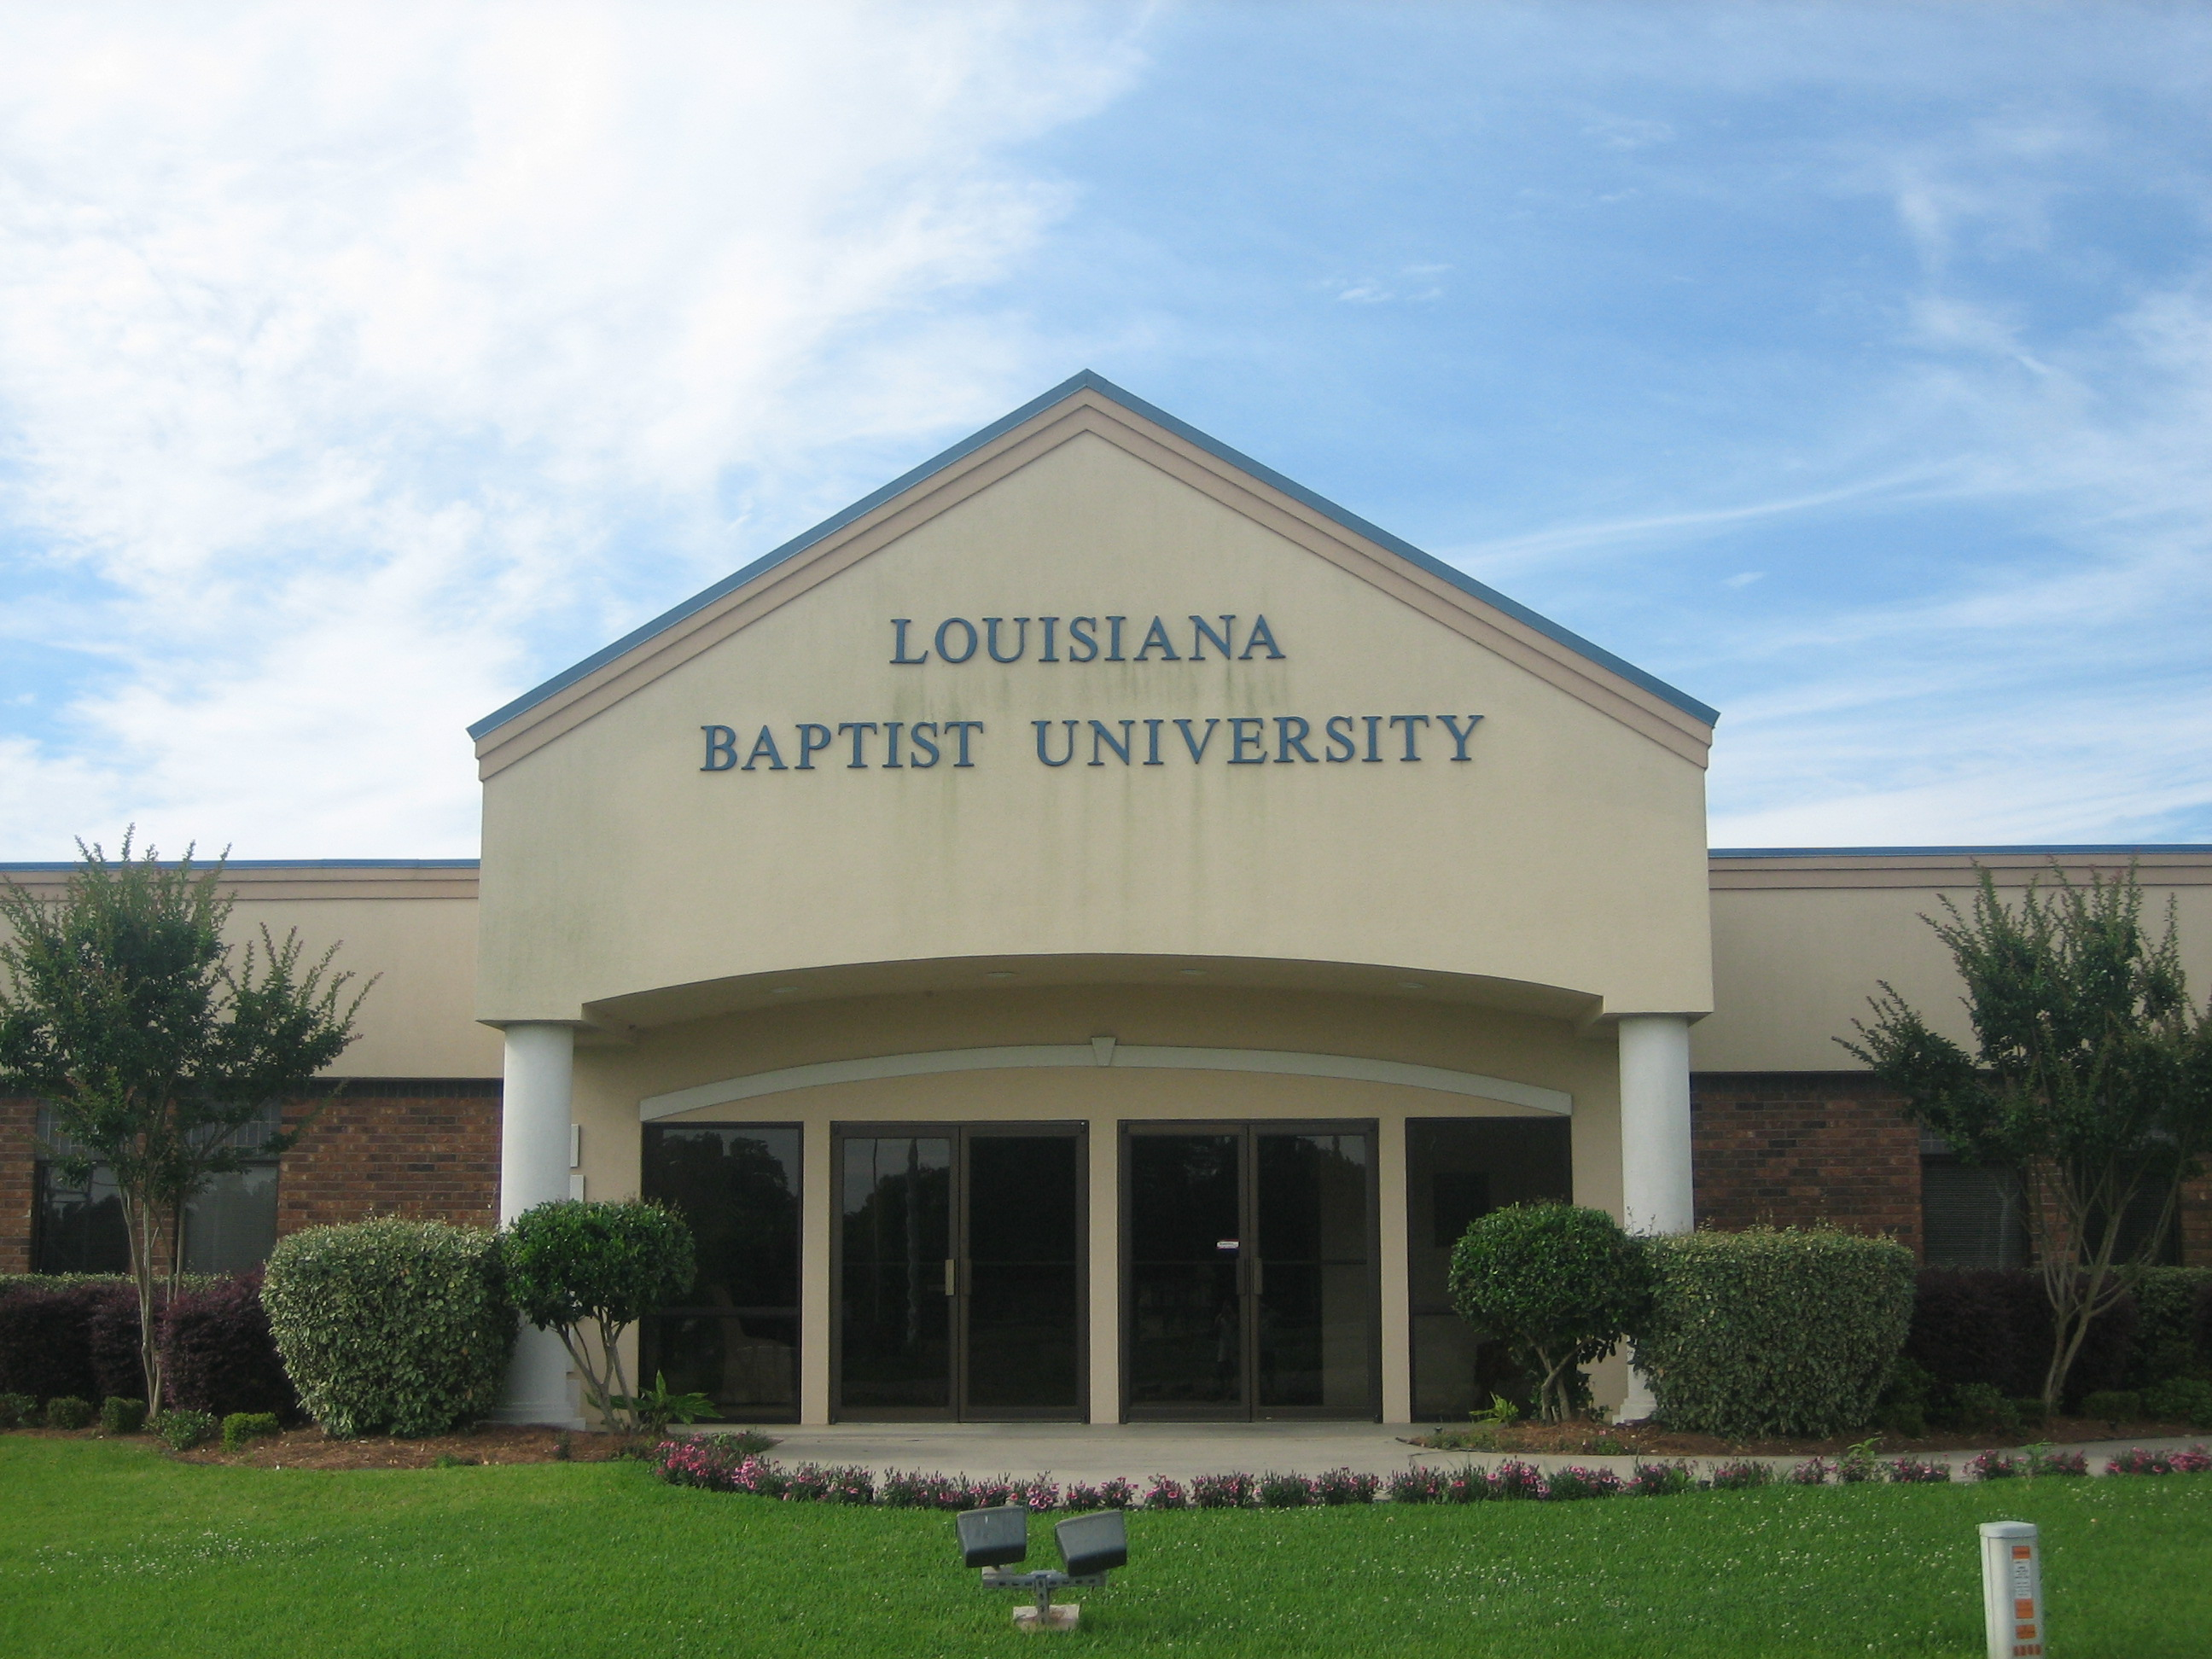 Louisiana Baptist University at Shreveport IMG 0927.JPG